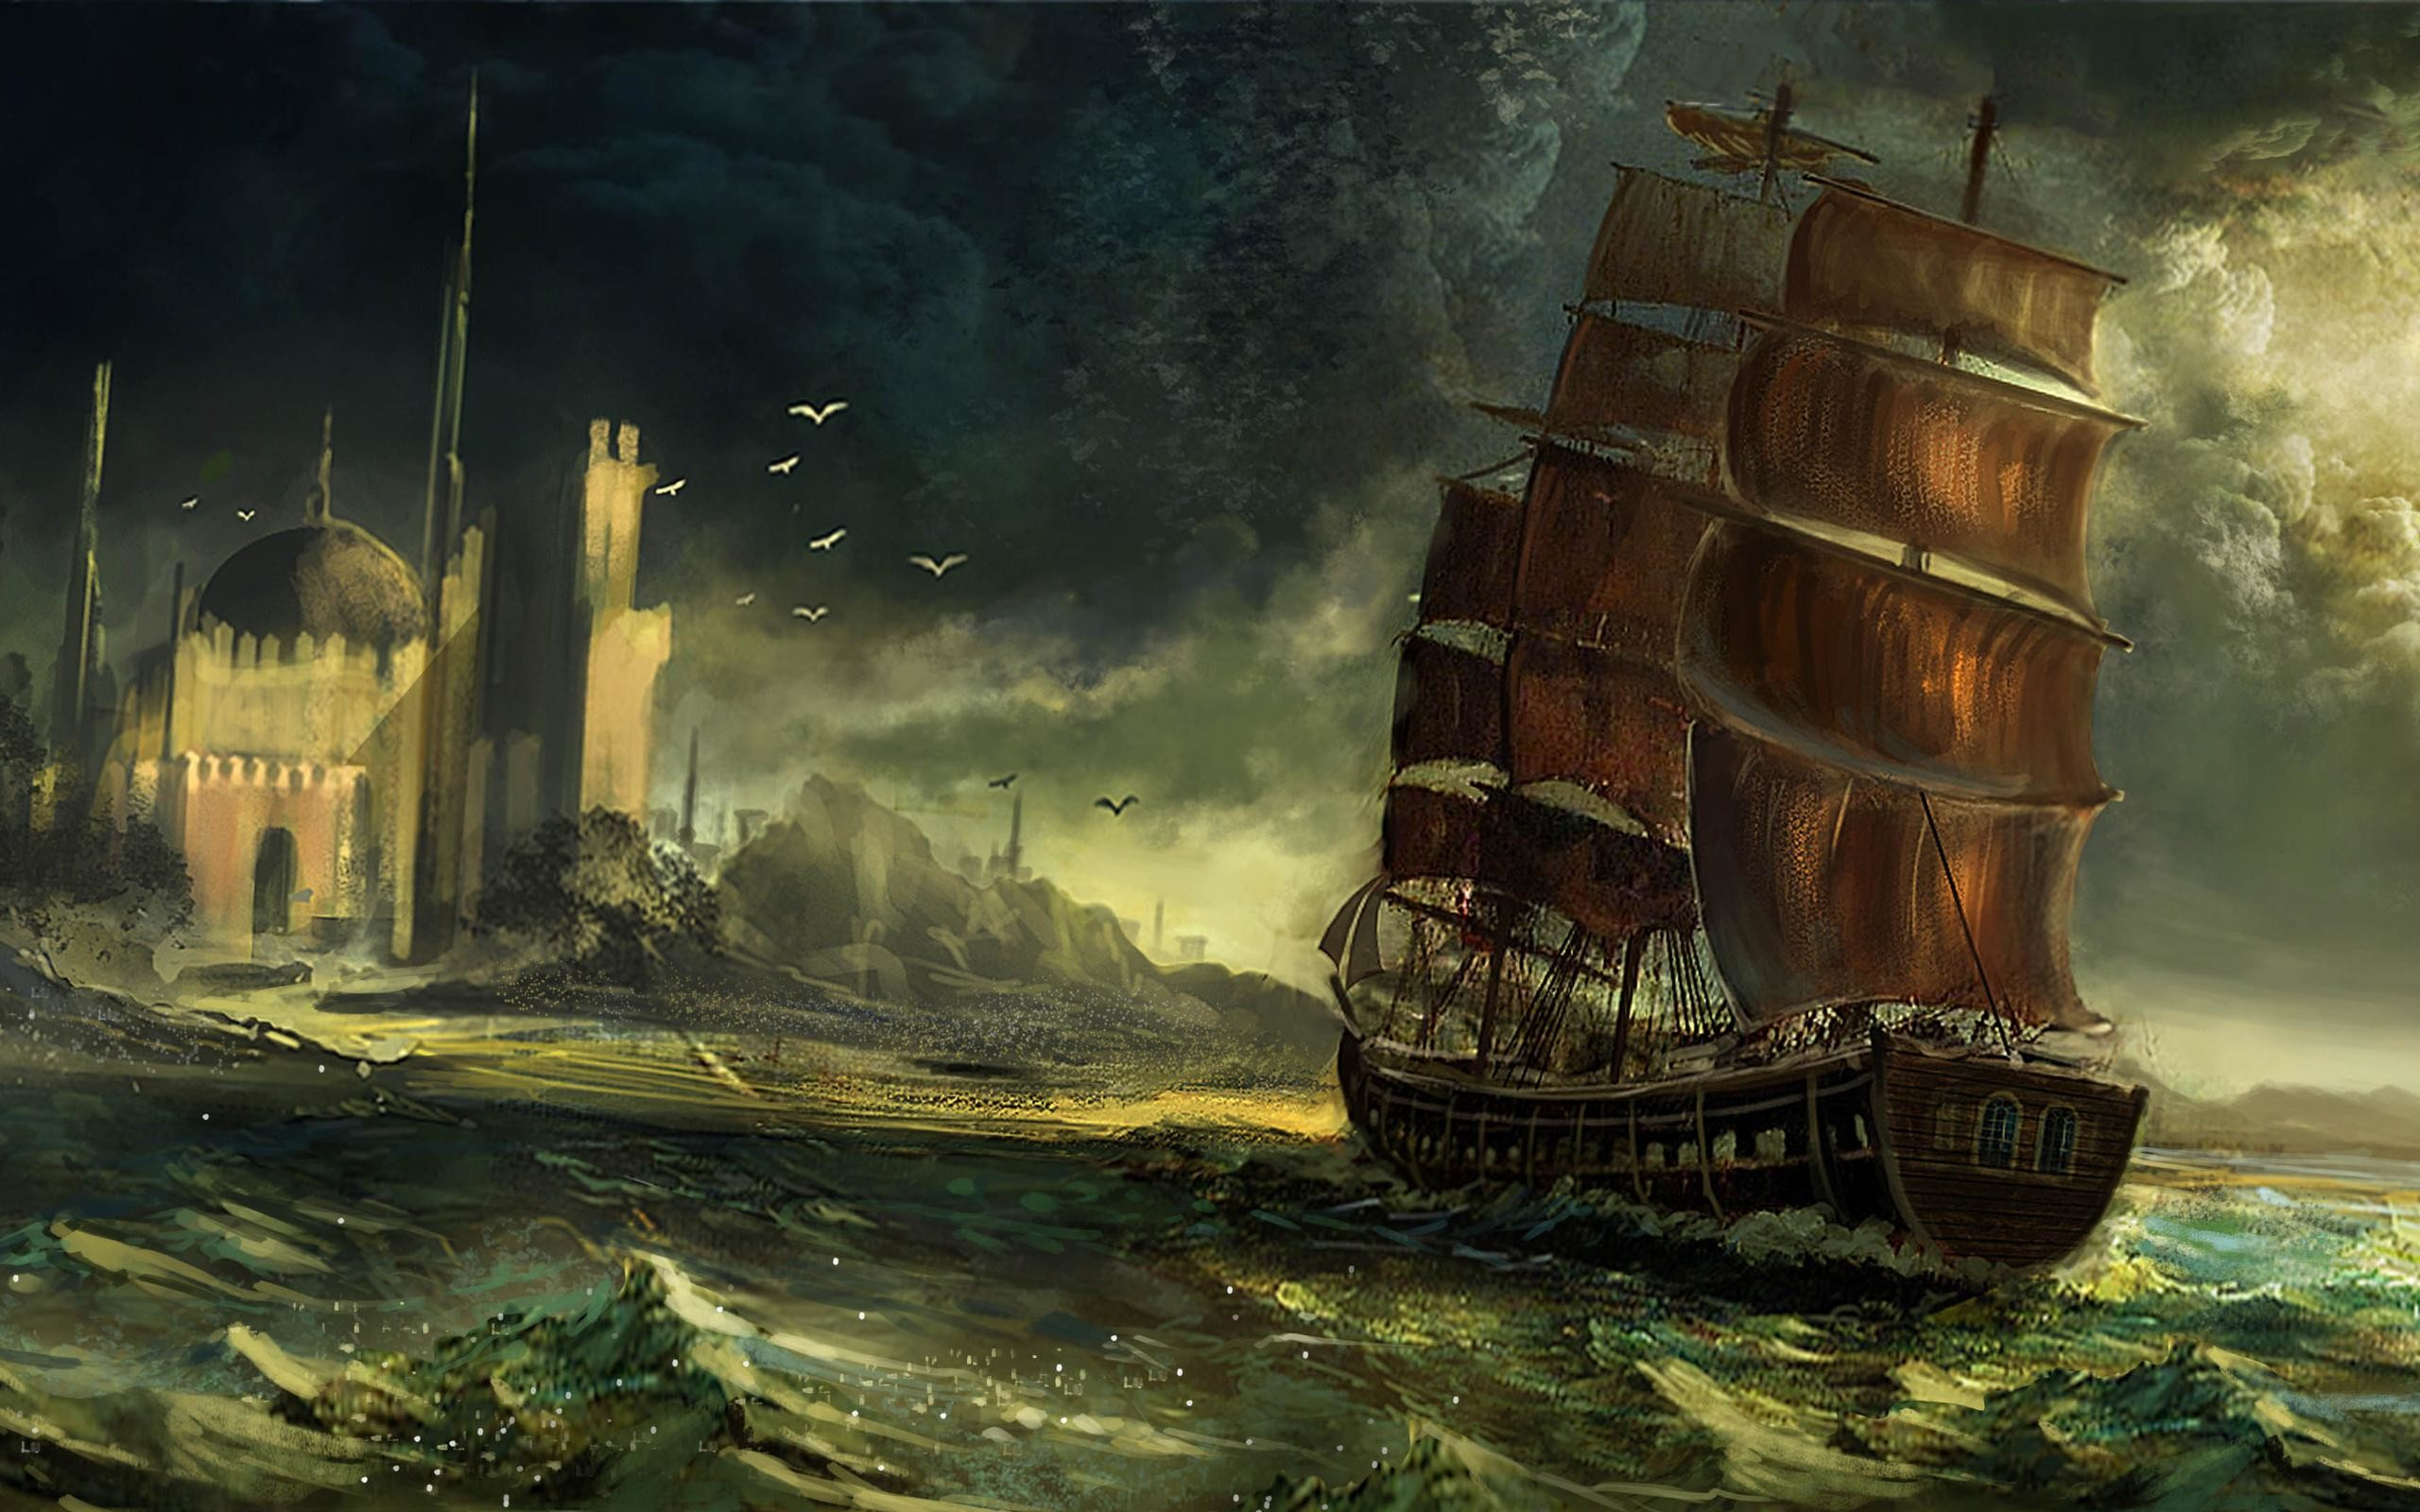 2560x1600 Pirate Ship #k8ni  px 415.63 KB Other ghost pirate ship wallpaper  pirate pirate ship